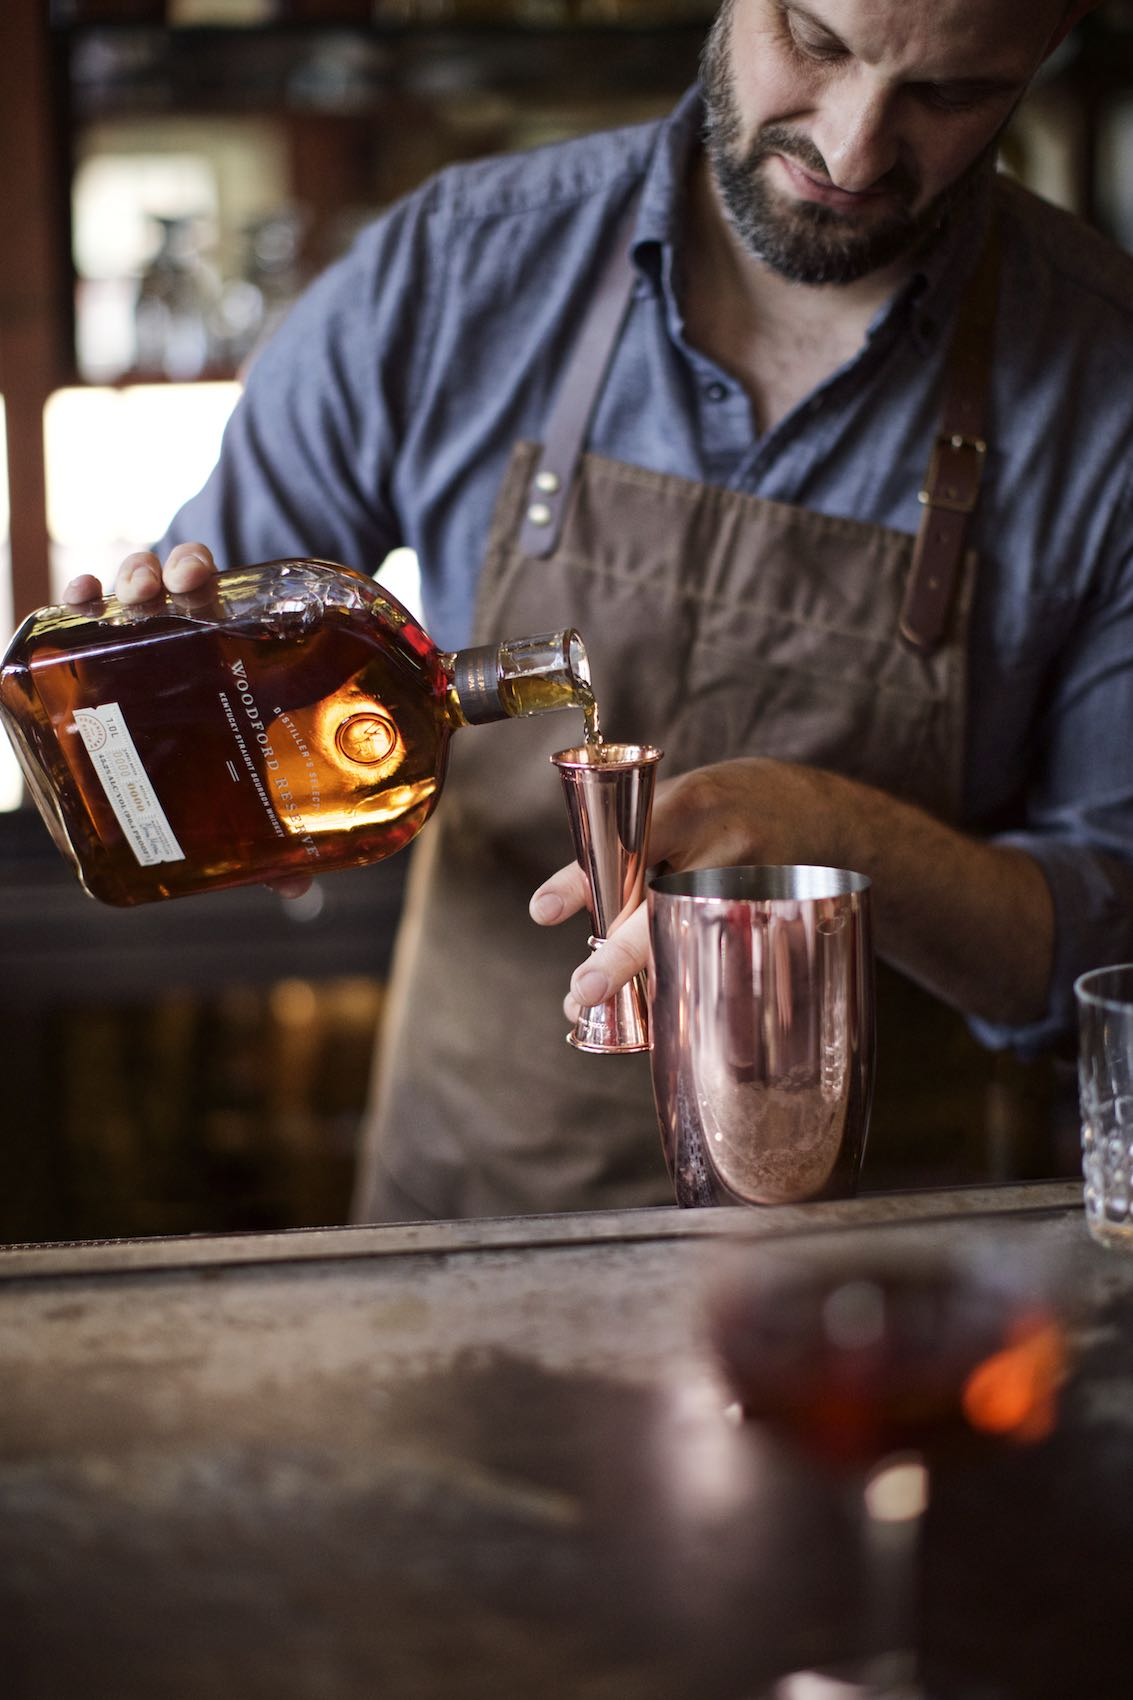 Jody Horton Photography - Woodford Reserve Bourbon Whiskey Ad with bartender pouring into copper jigger.